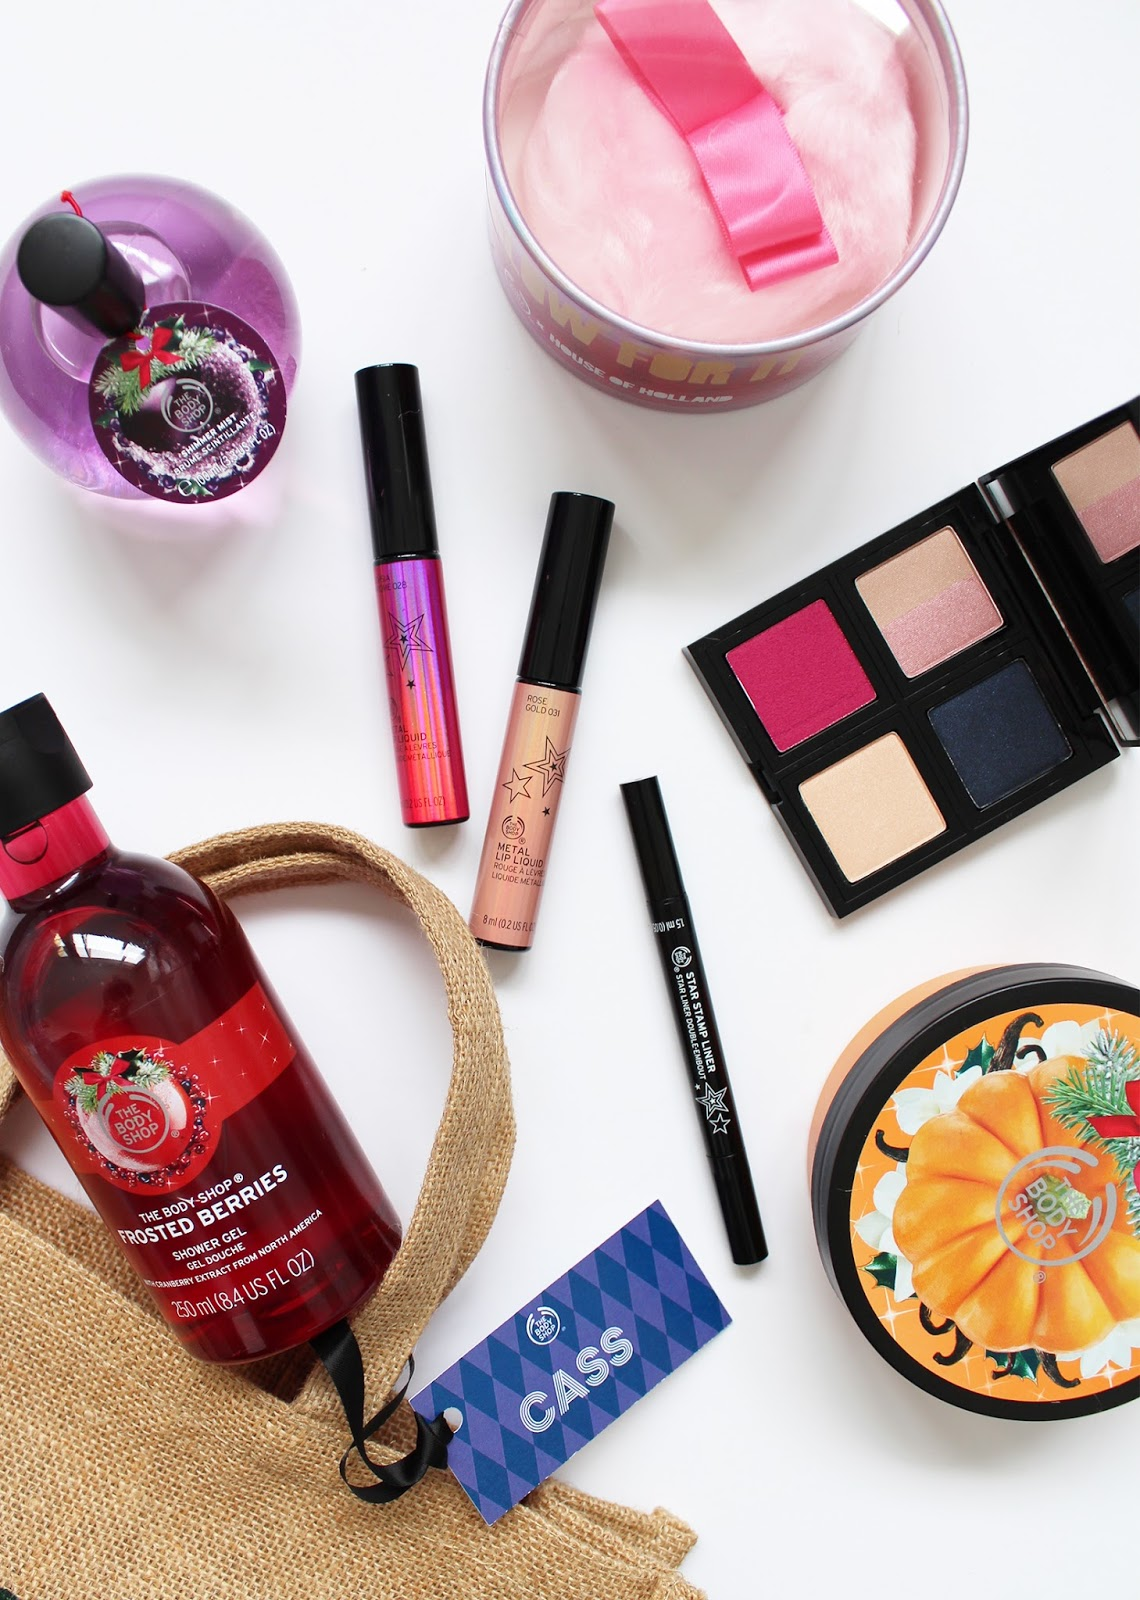 THE BODY SHOP | The New Seasonal Range is Here! - CassandraMyee